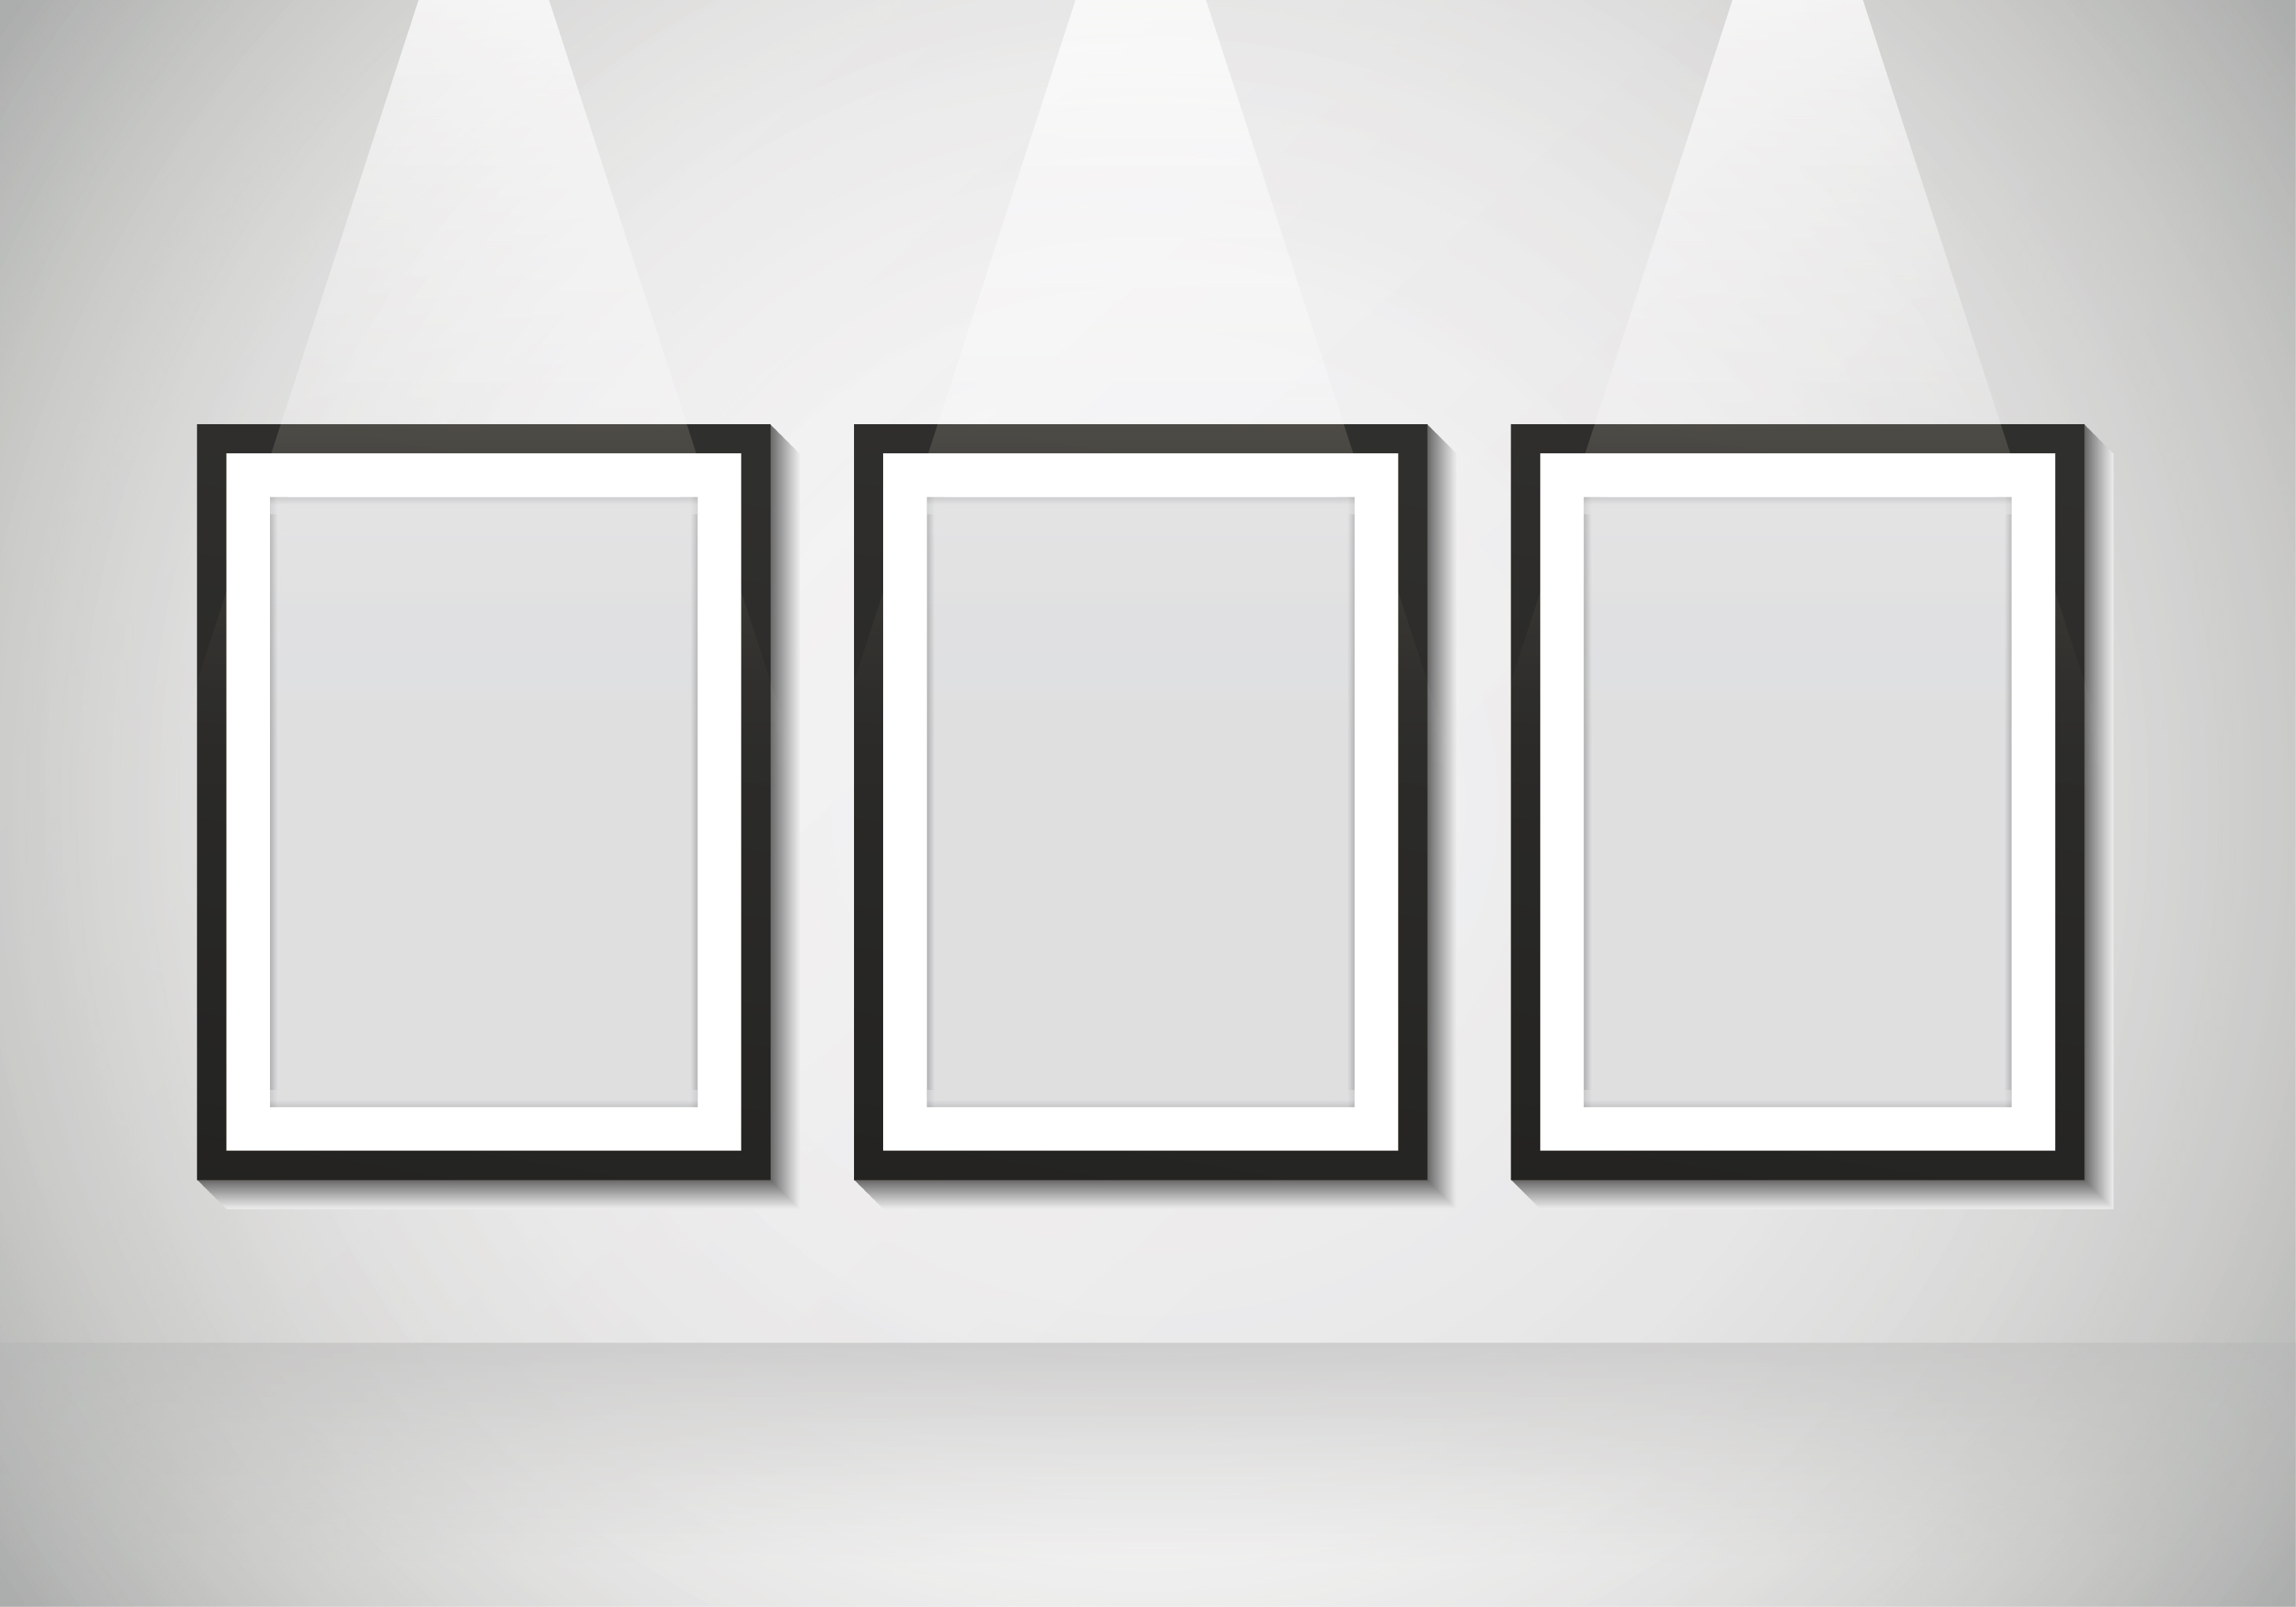 blank poster free vector art 16919 free downloads